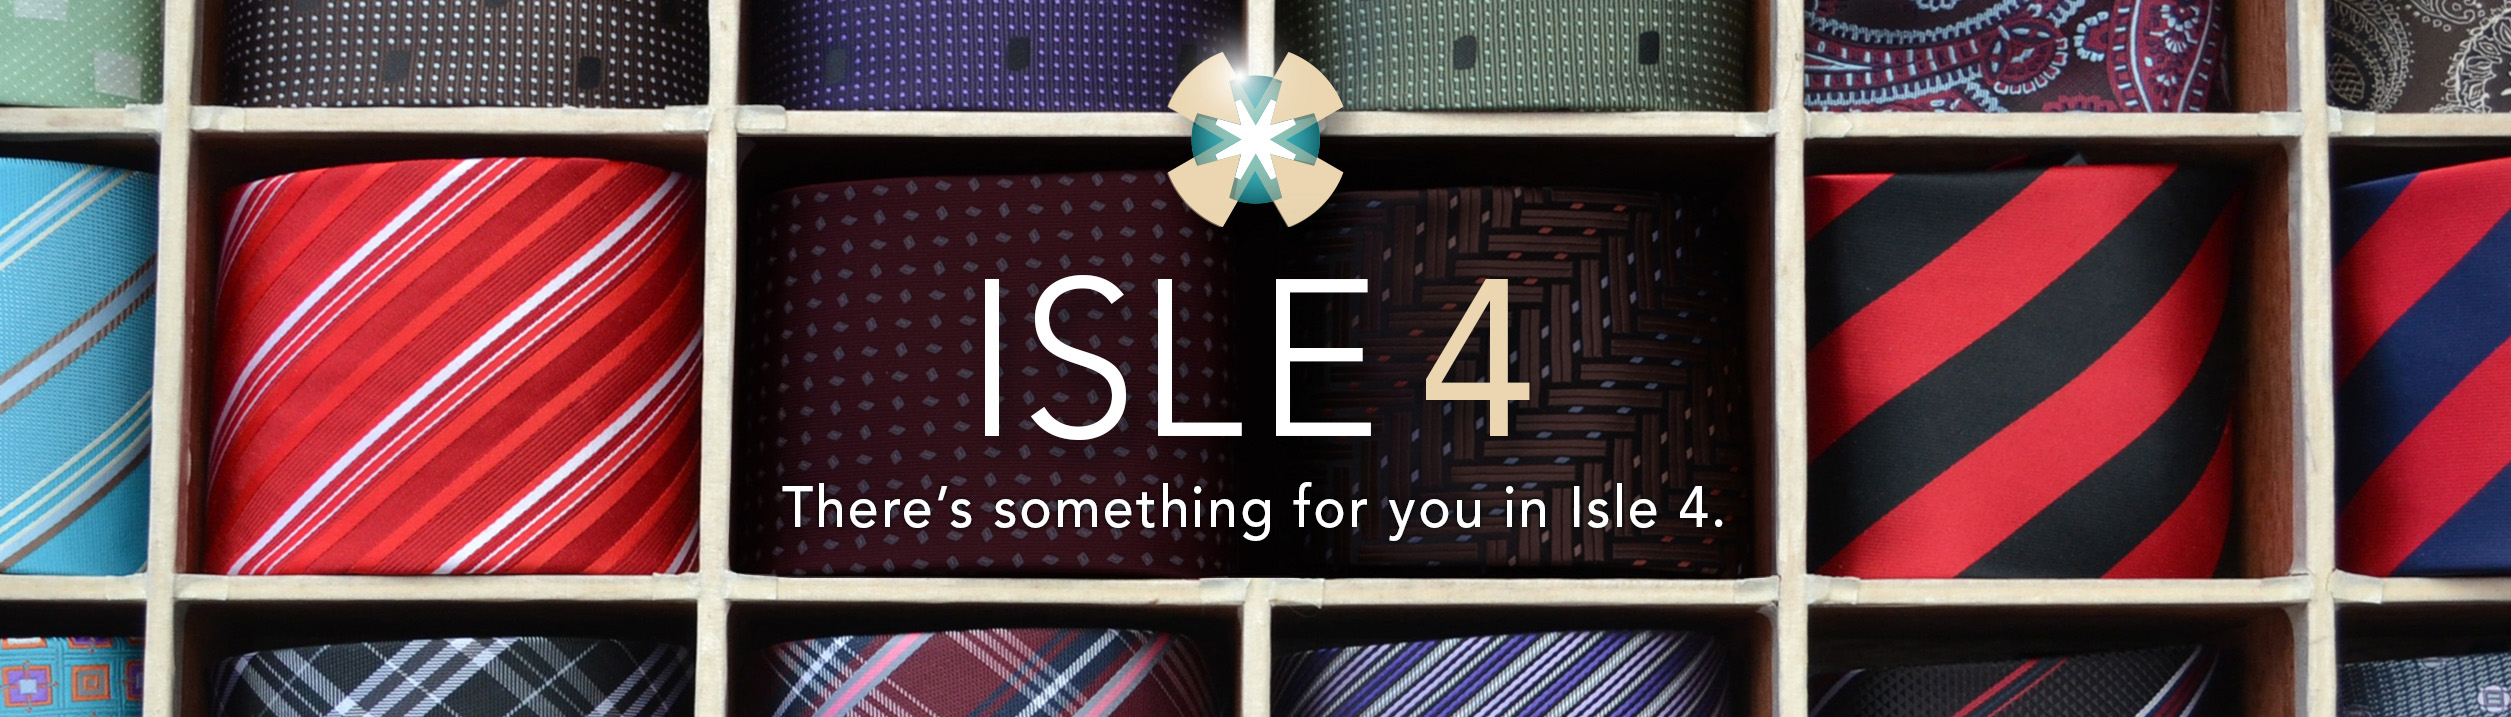 Isle4-There's Something for You